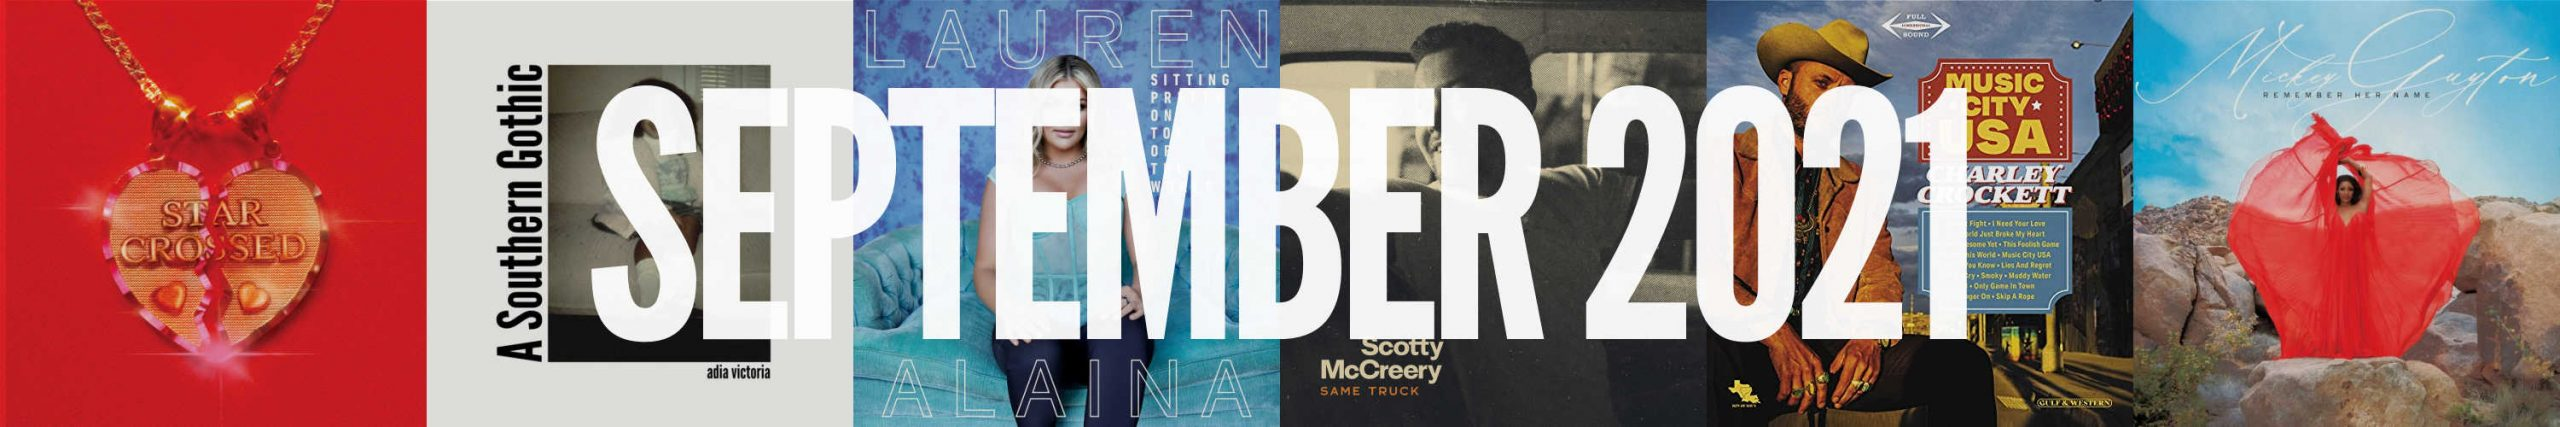 September 2021 New Country Album Releases